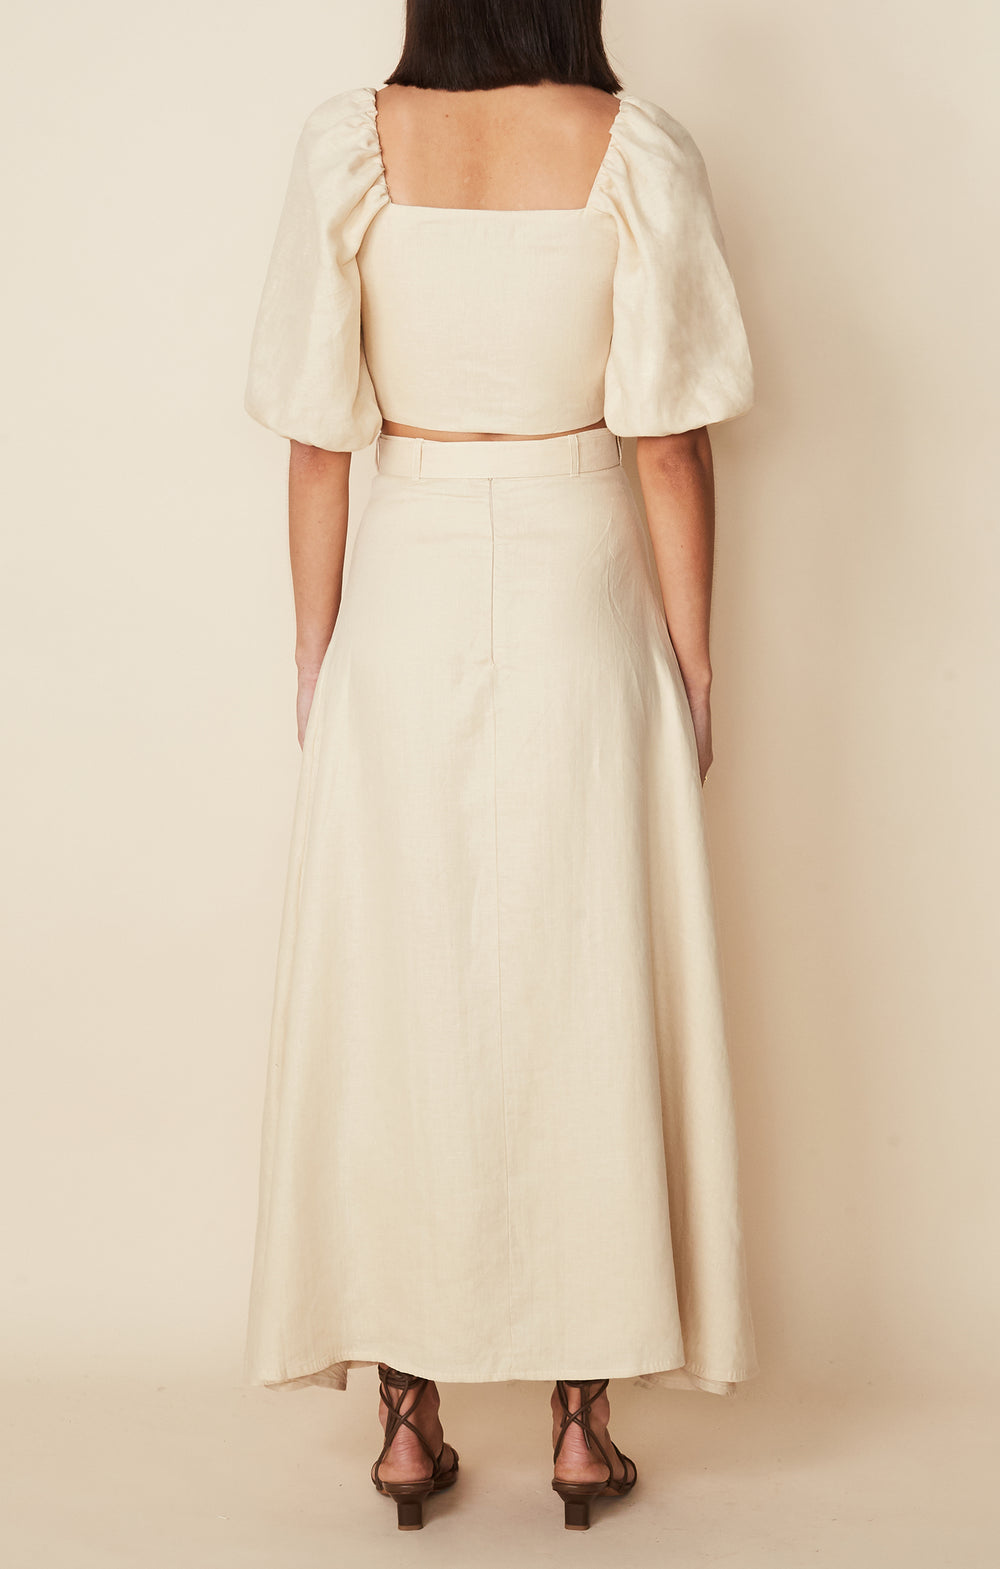 Full Length back view of model wearing Devon Midi Skirt in cream linen by Faithful the Brand